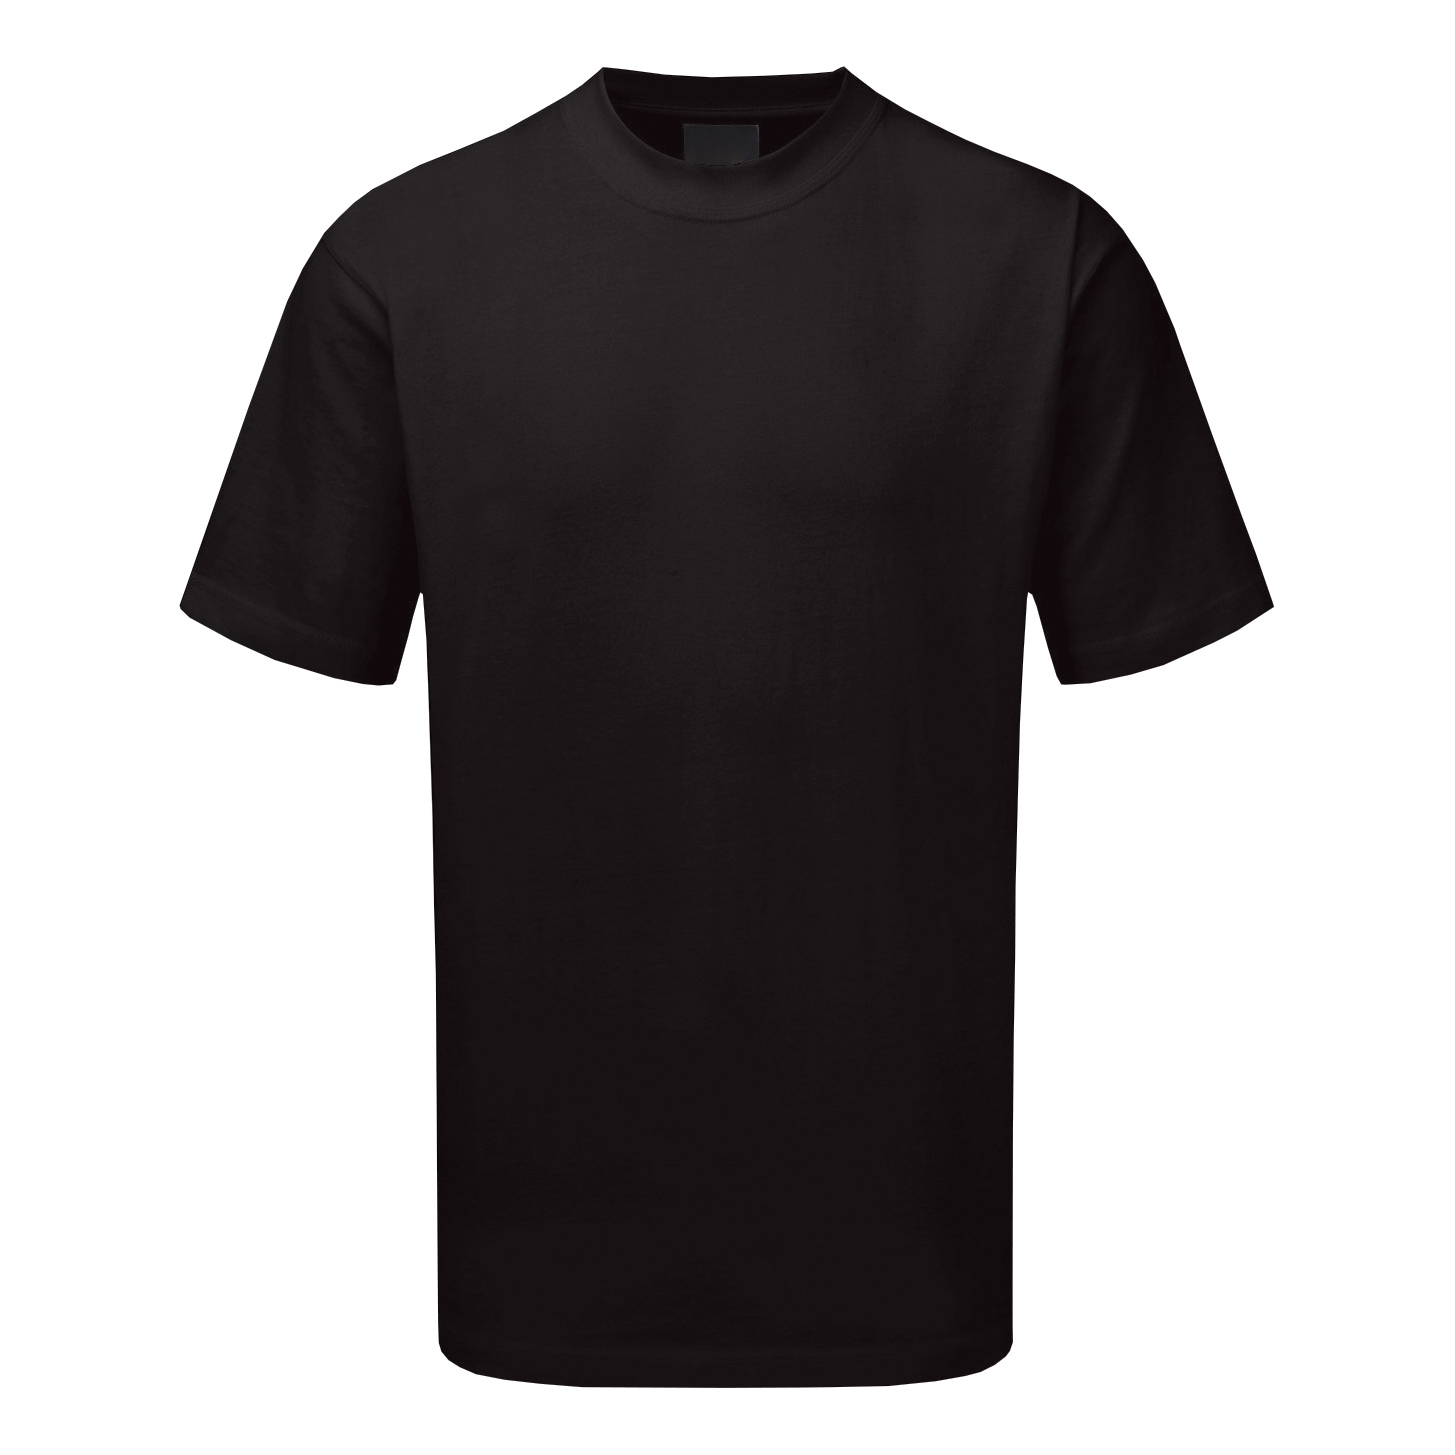 Premium T-Shirt Polycotton Triple Stitched Size 5XL Black Ref CLCTSHWBL5XL *Up to 3 Day Leadtime*